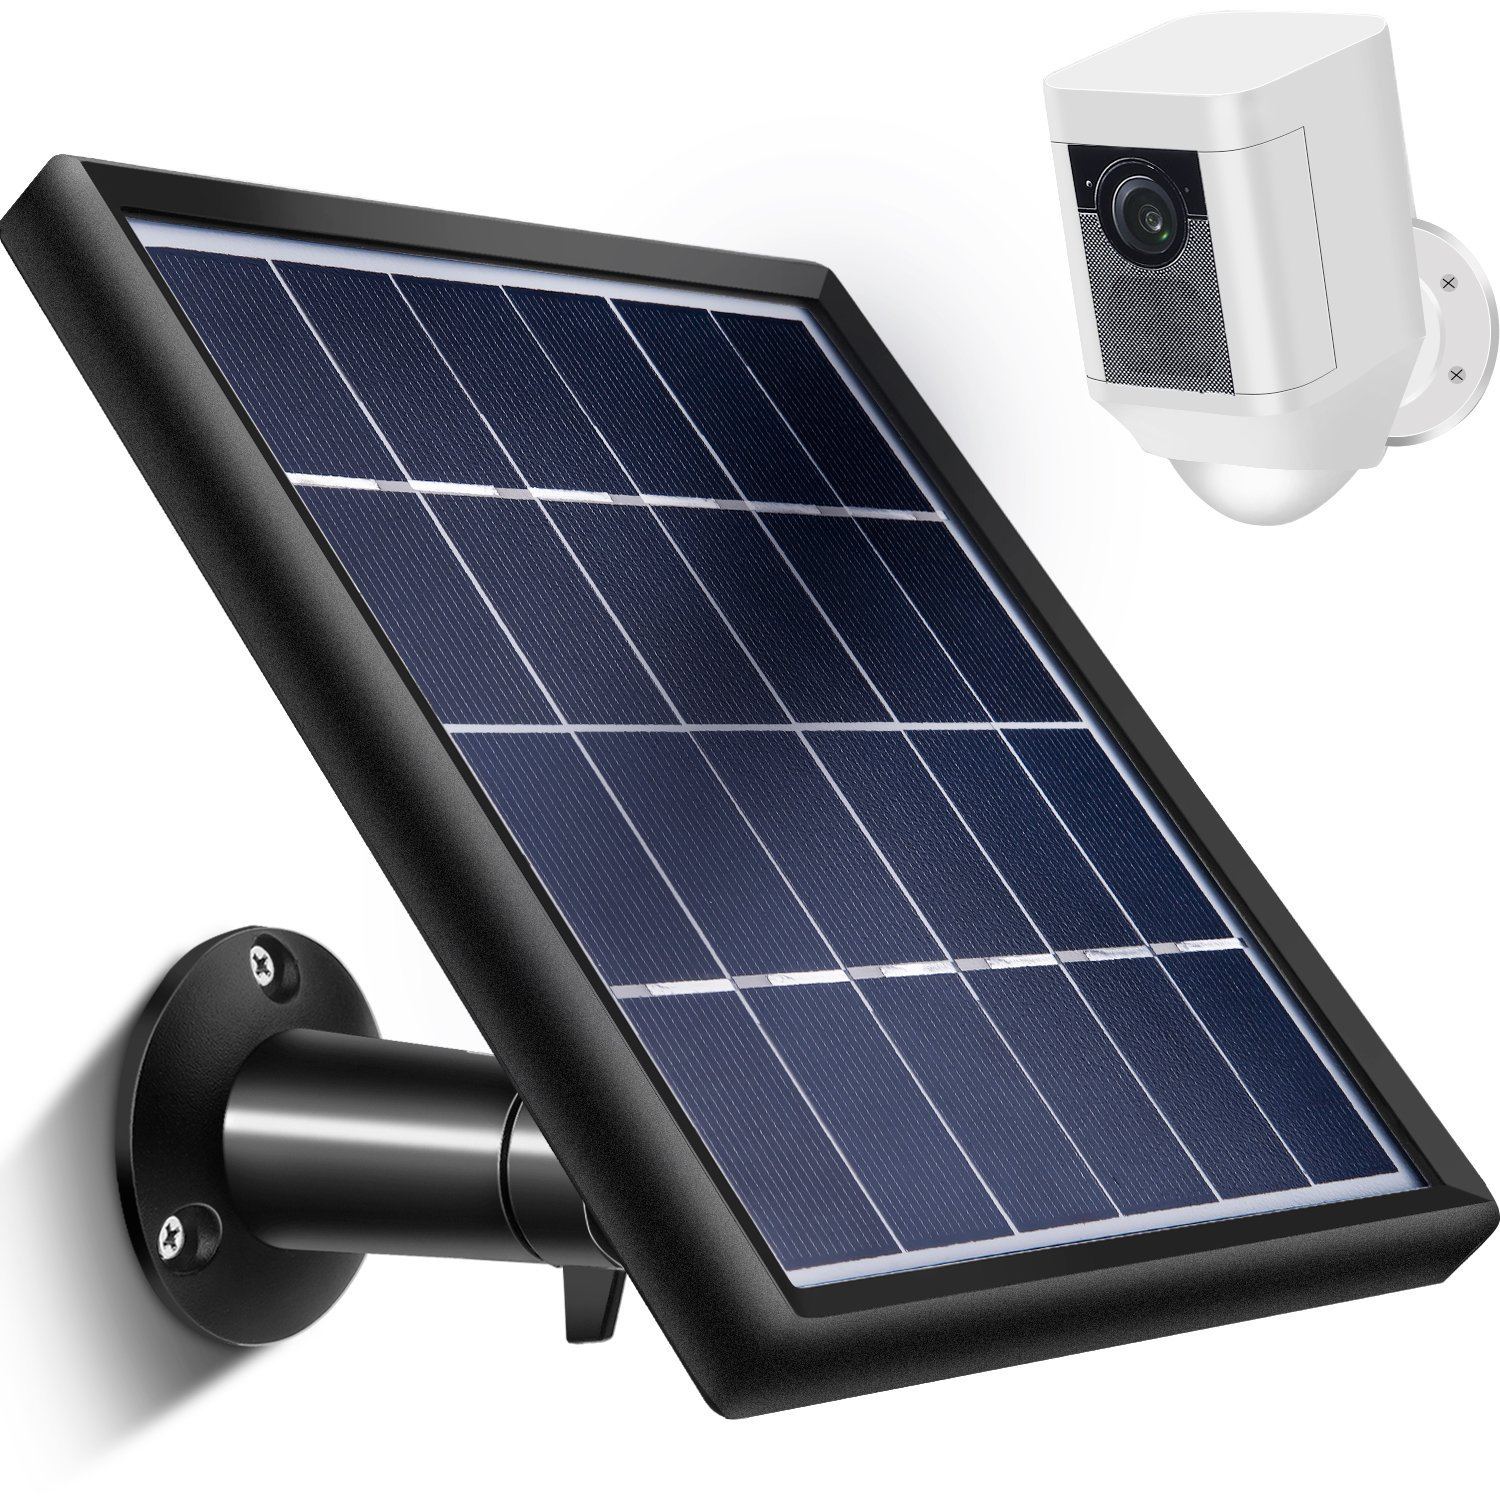 Cheap Diy Solar Panel Mount, find Diy Solar Panel Mount